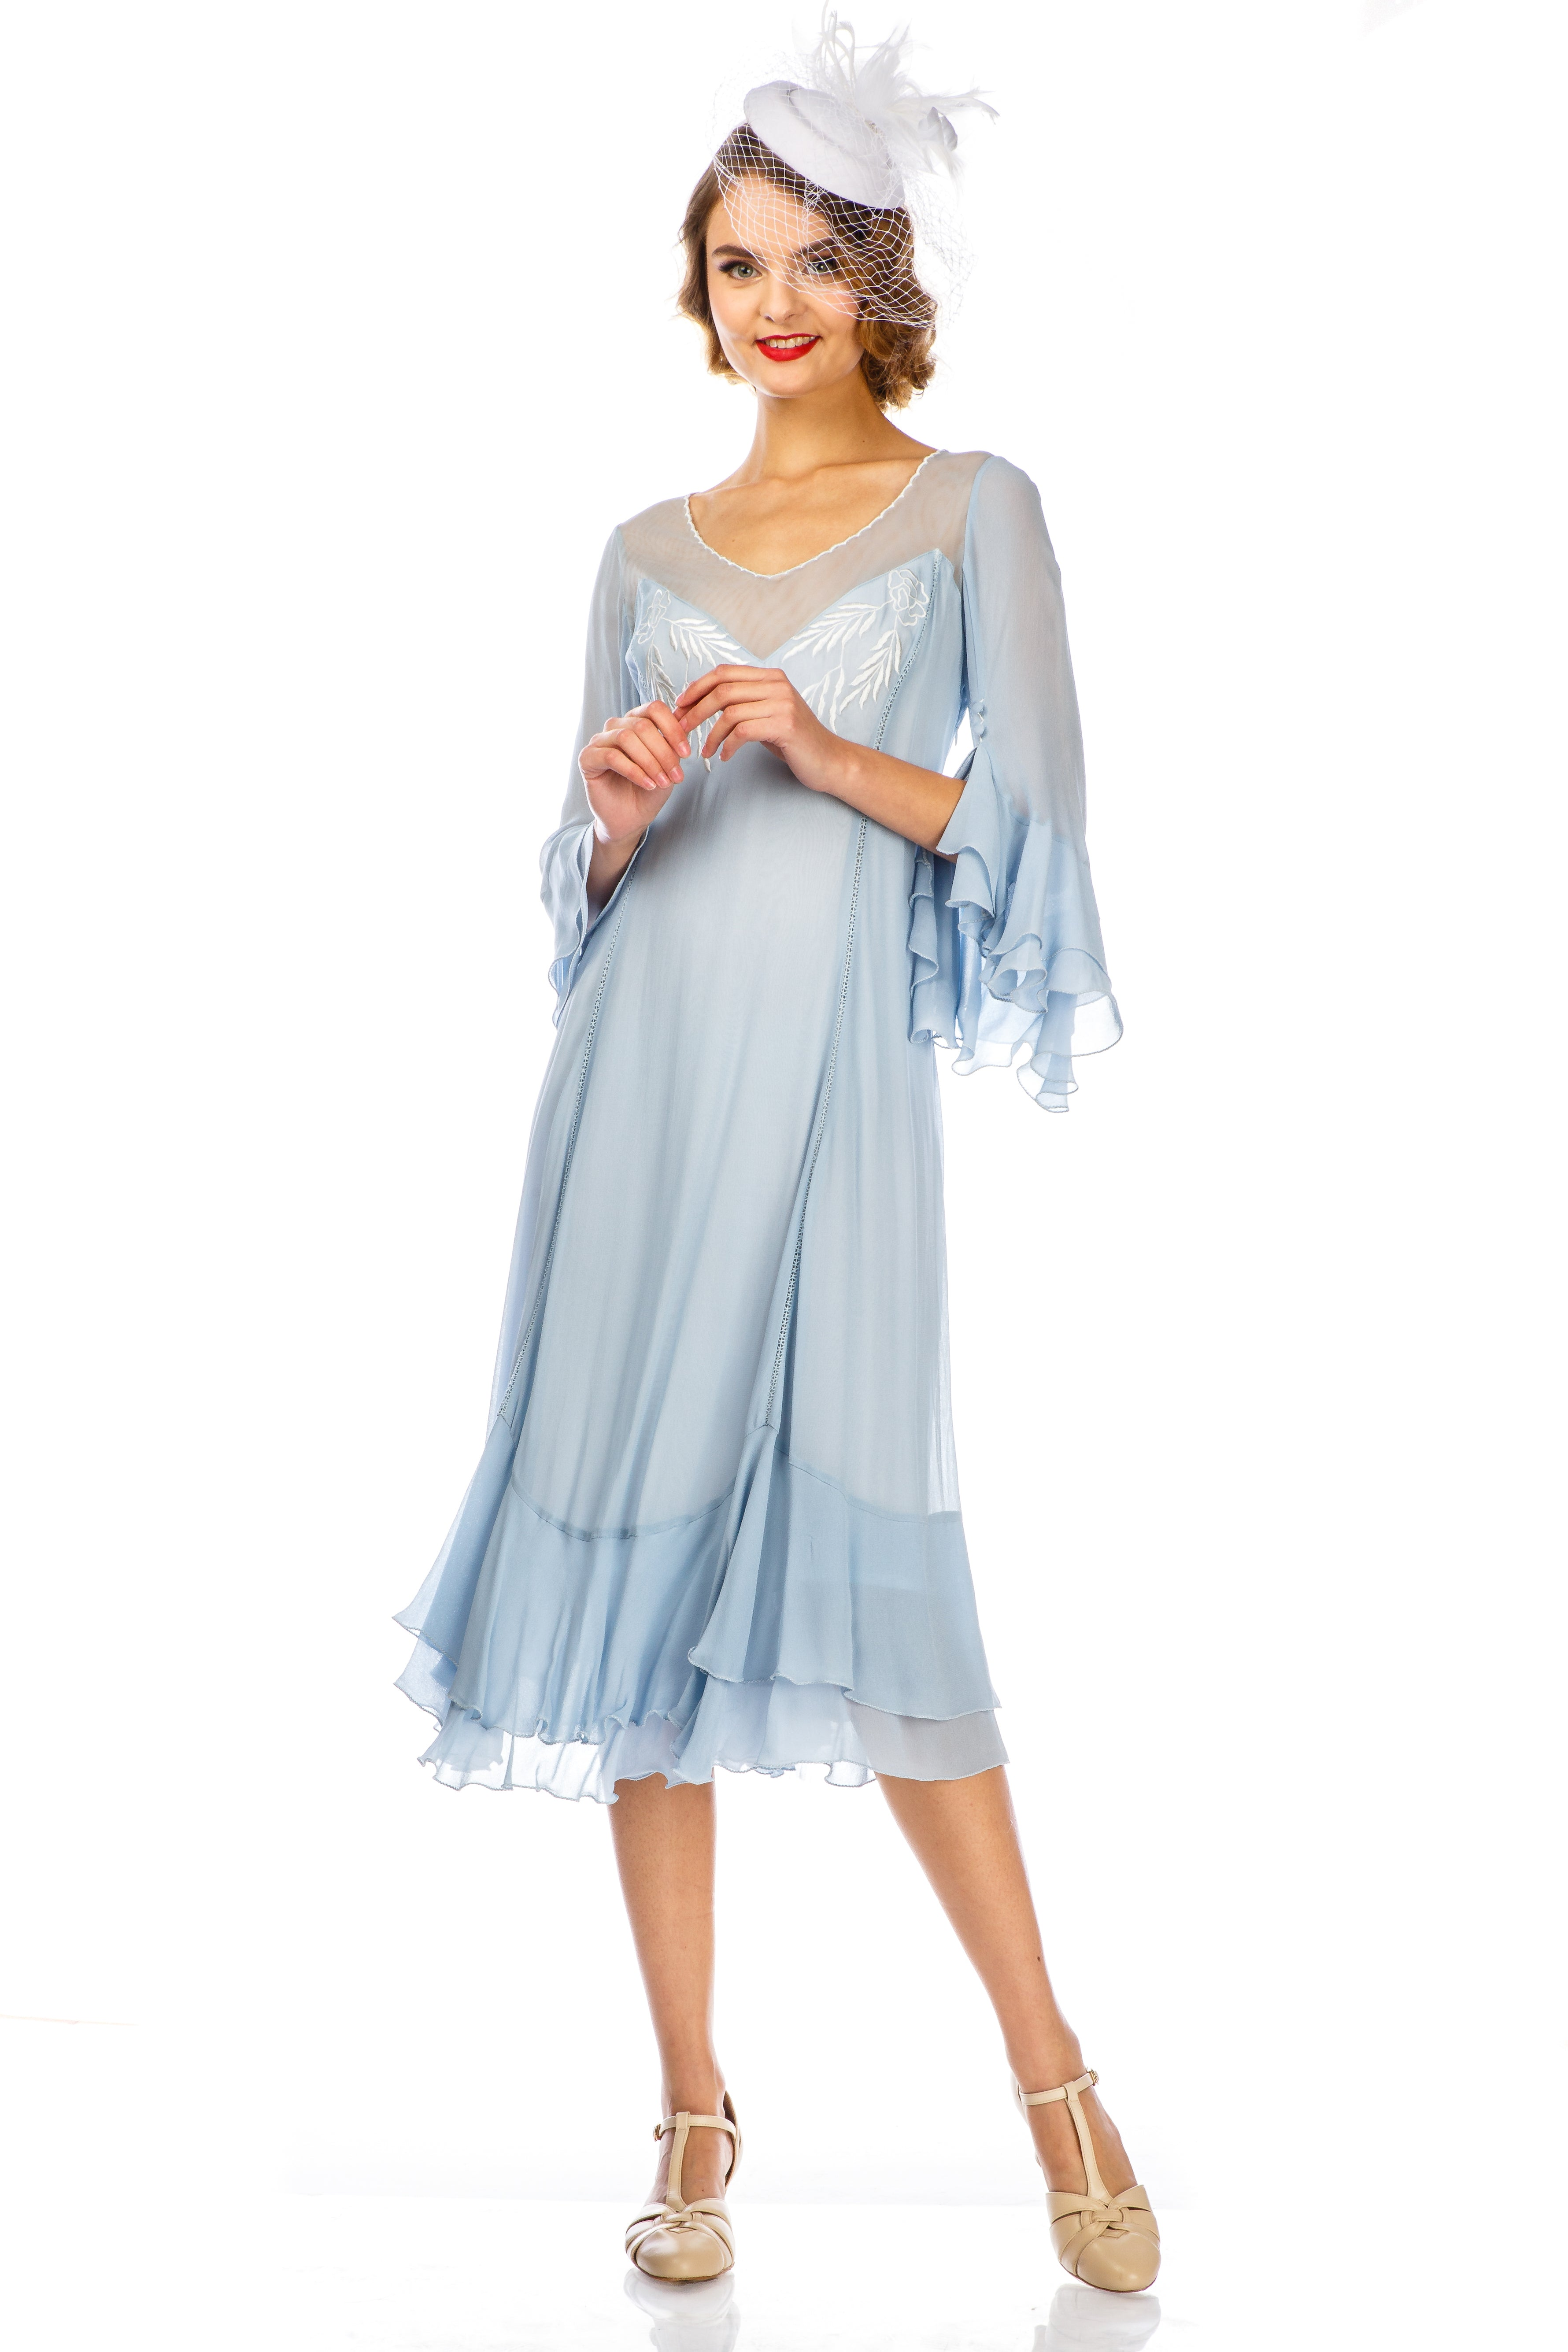 1920s Afternoon Dresses, White Tea Dresses Vintage Inspired Sky Blue Dress by Nataya $206.00 AT vintagedancer.com